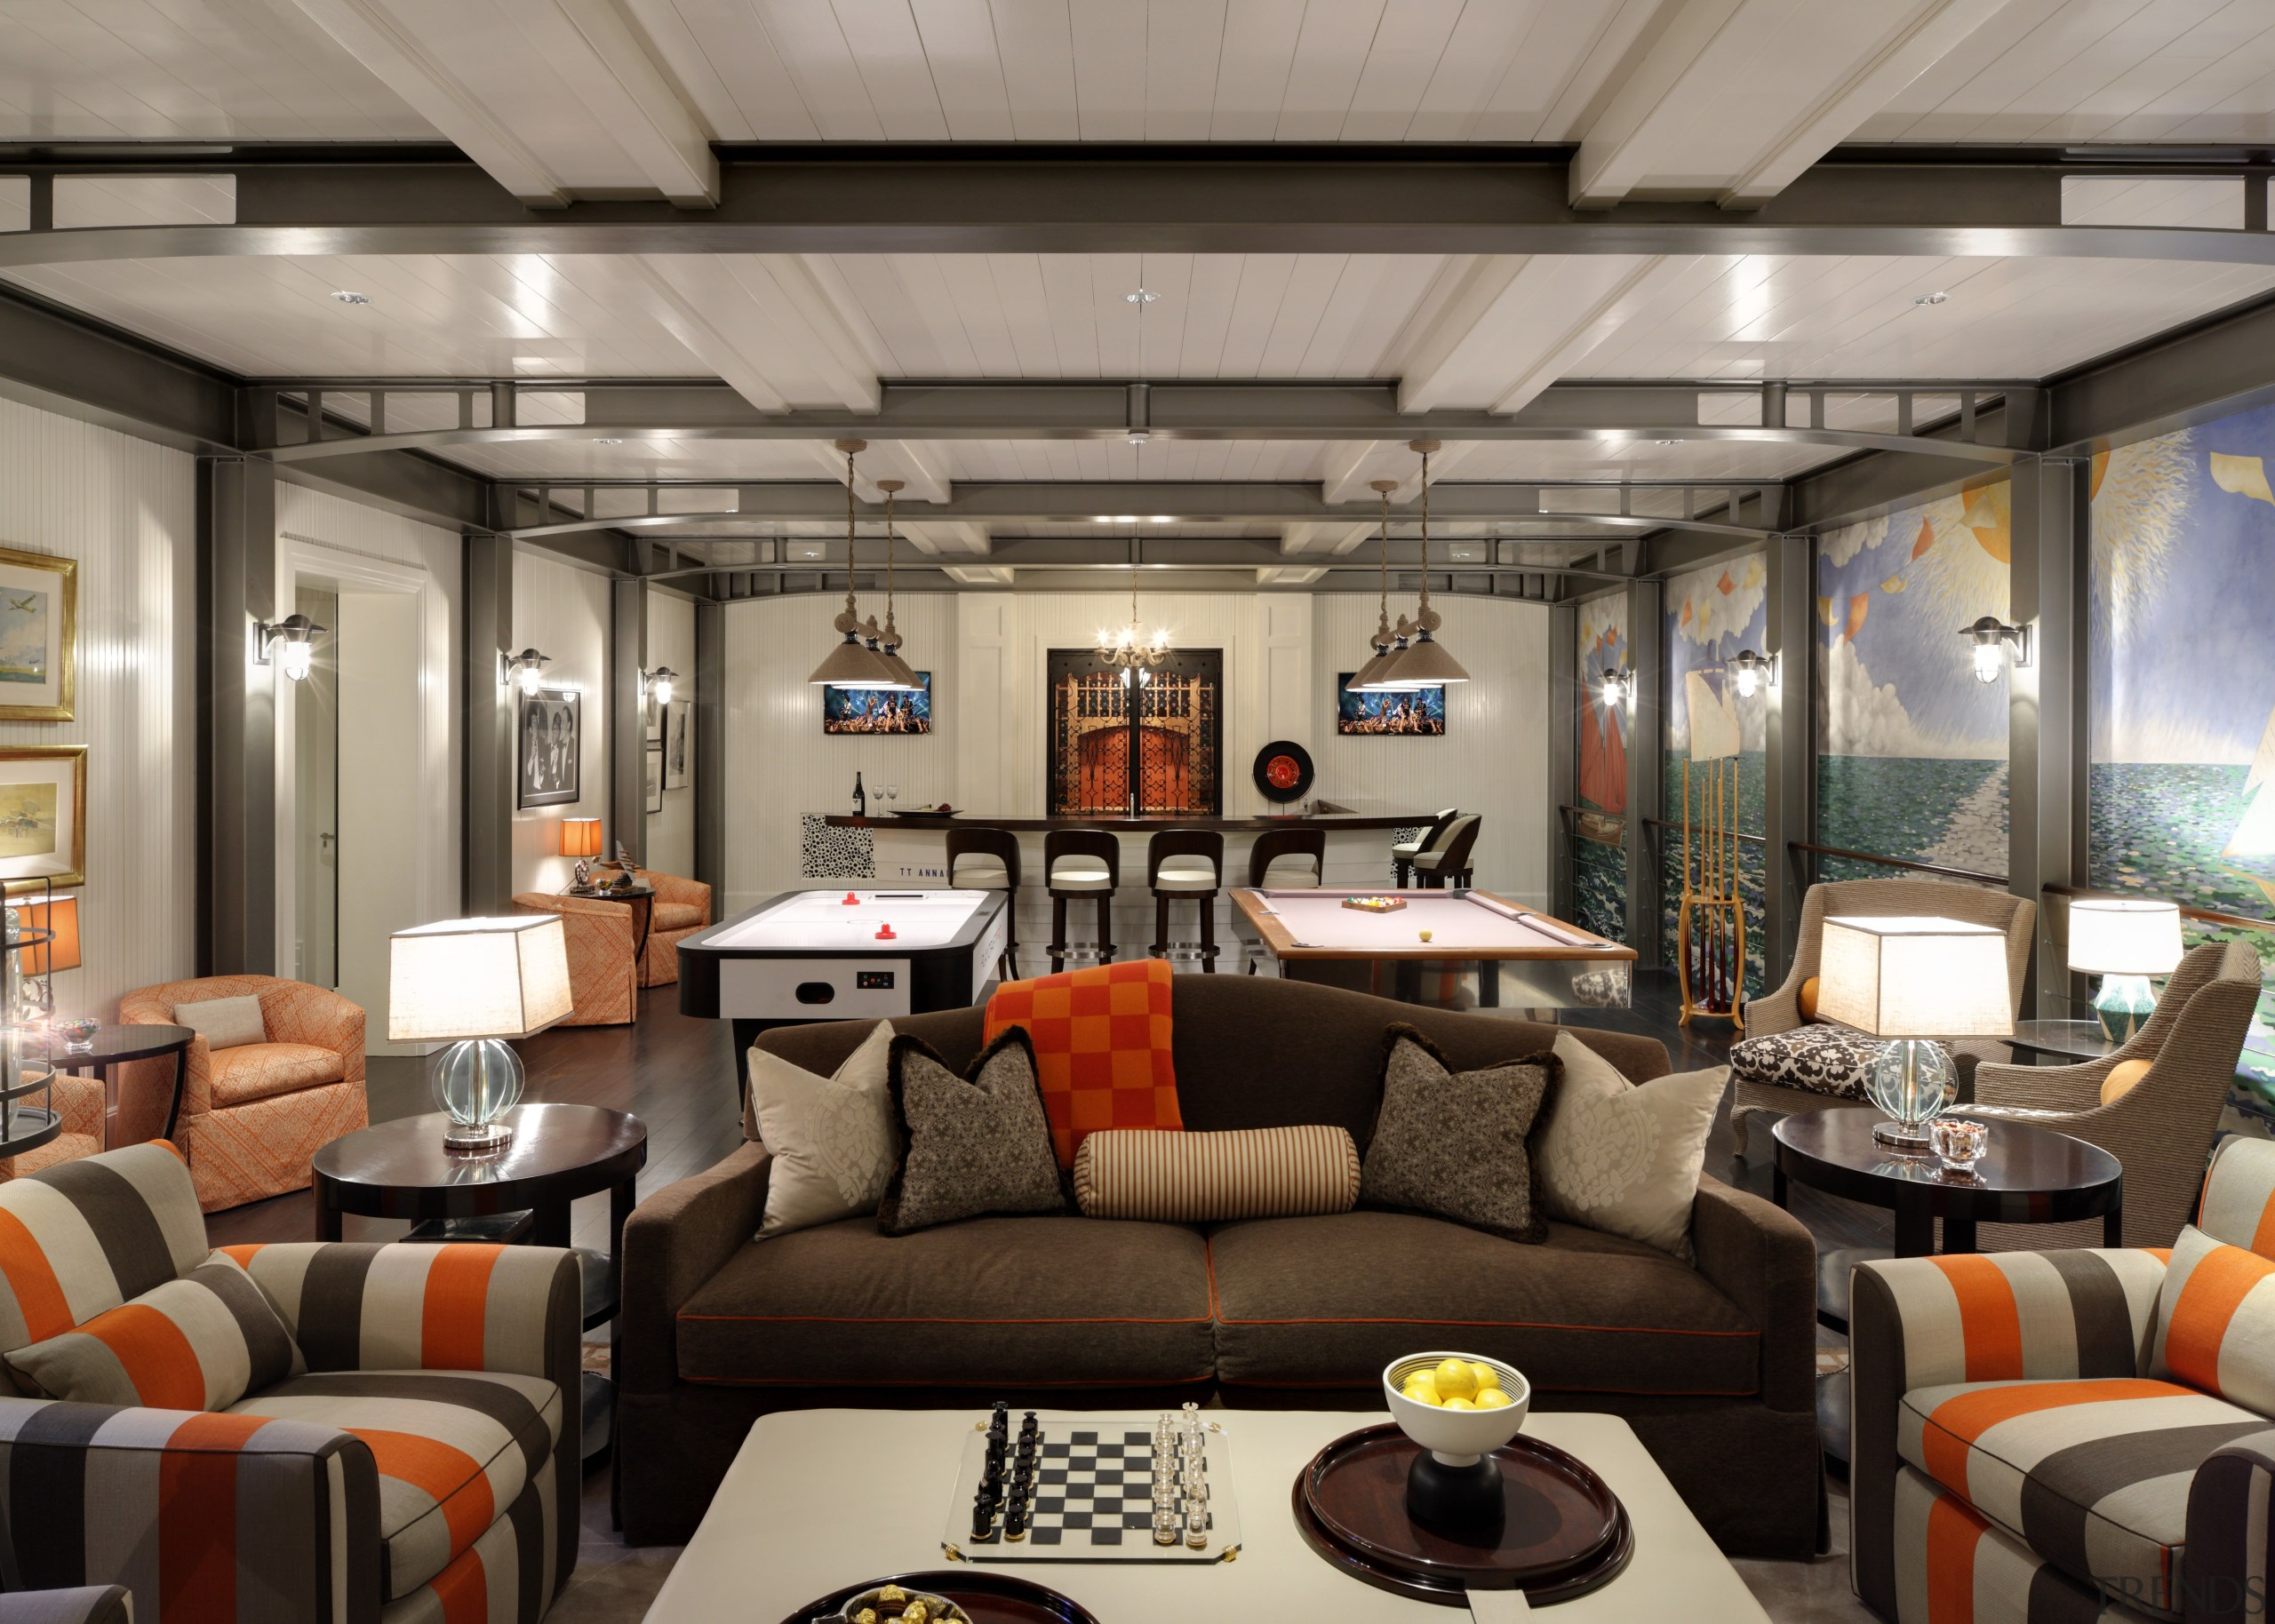 The main room features substantial metal wall and interior design, living room, gray, black